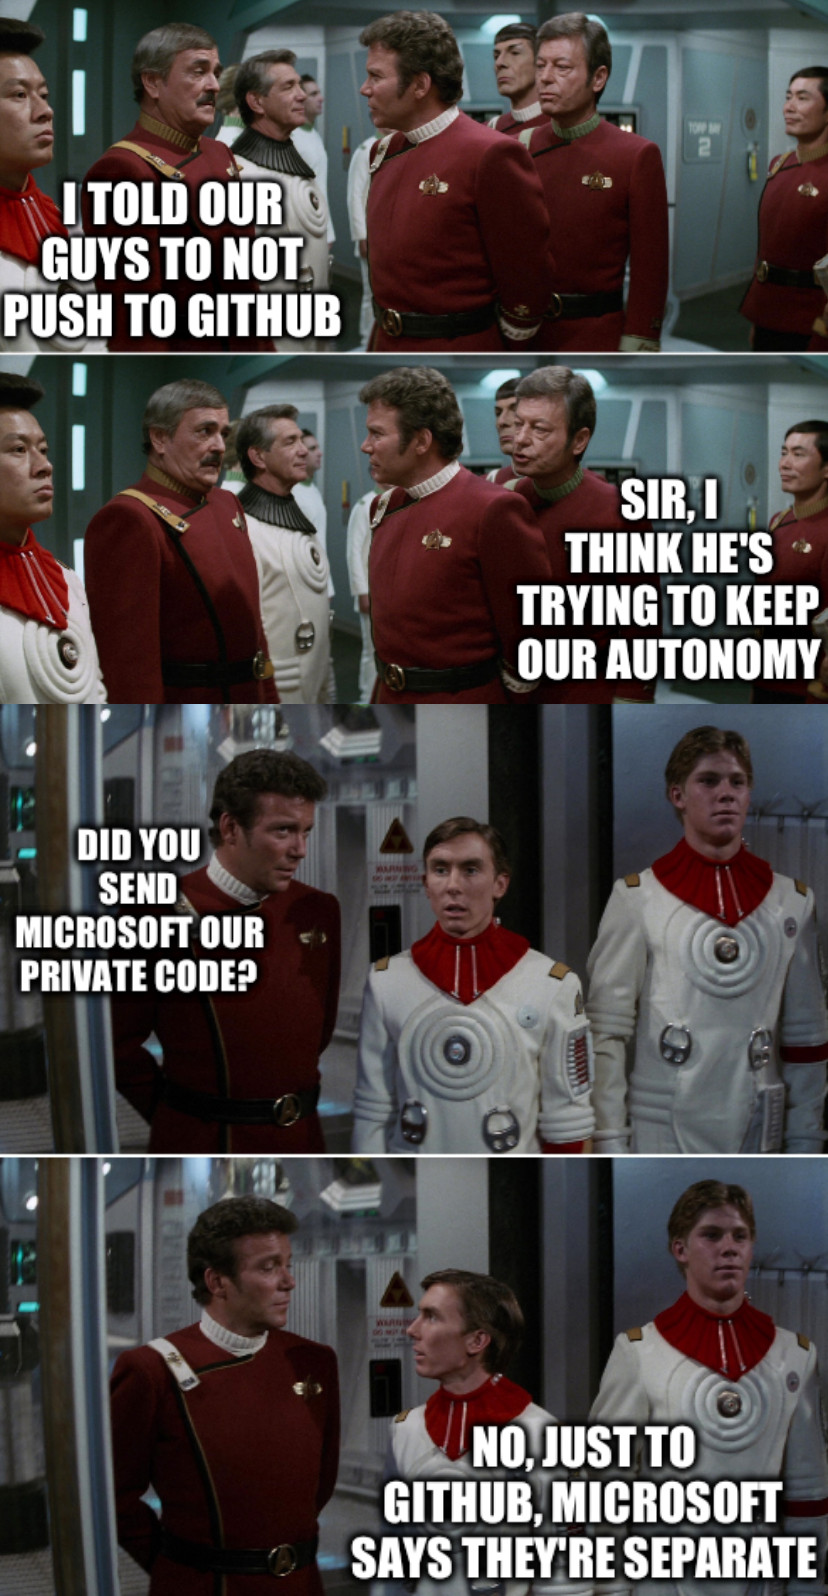 Scotty Kirk, Kirk Preston: I told our guys to not push to Github; Sir, I think he's trying to keep our autonomy; Did you send Microsoft our private code? No, just to Github, Microsoft says they're separate